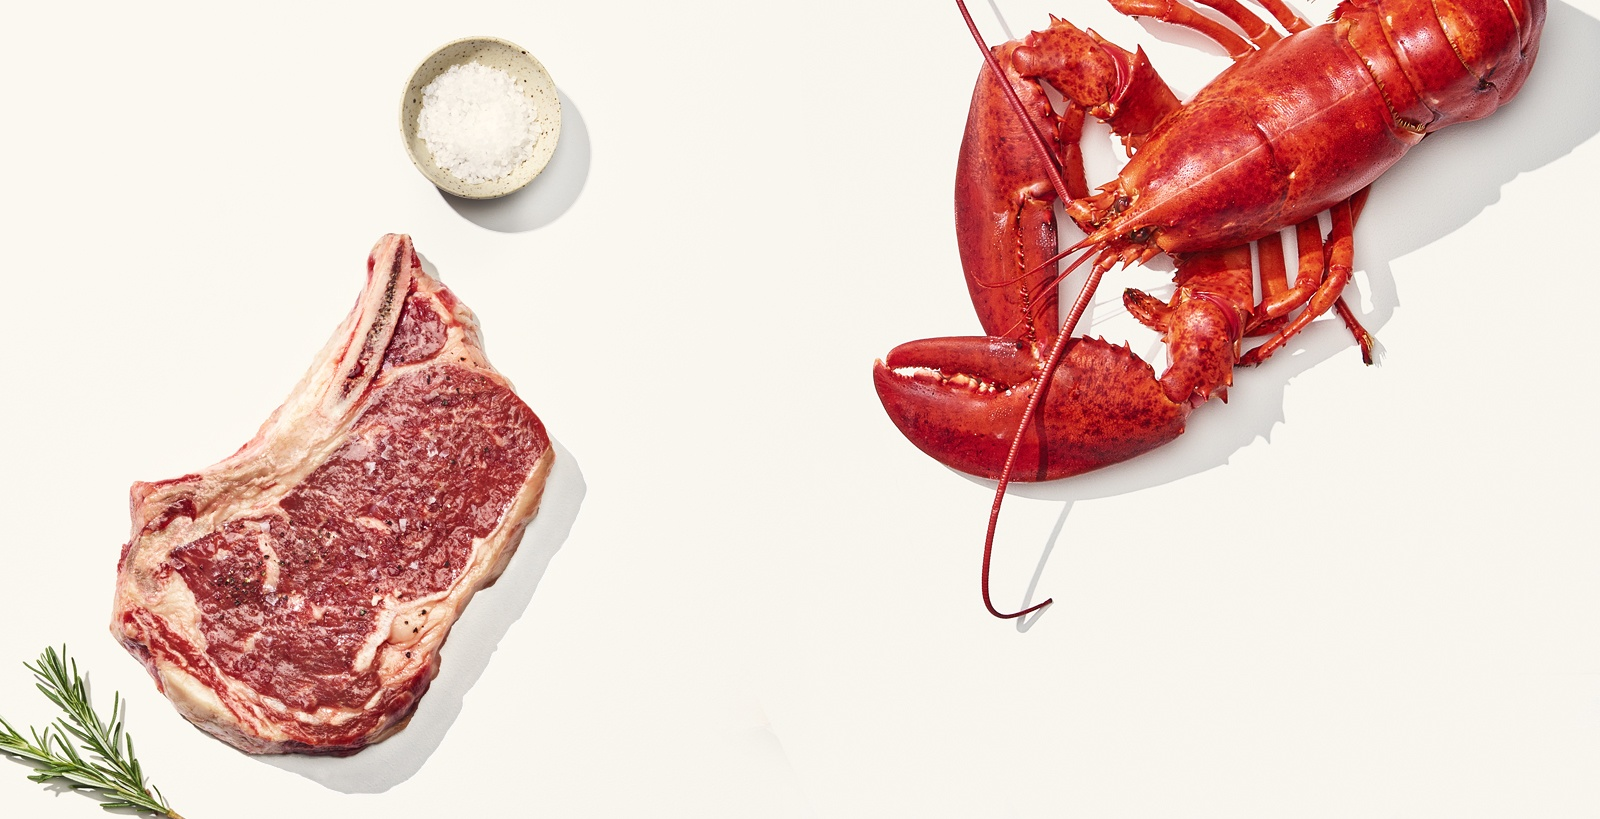 meat-seafood-lead-large1234-1.jpg